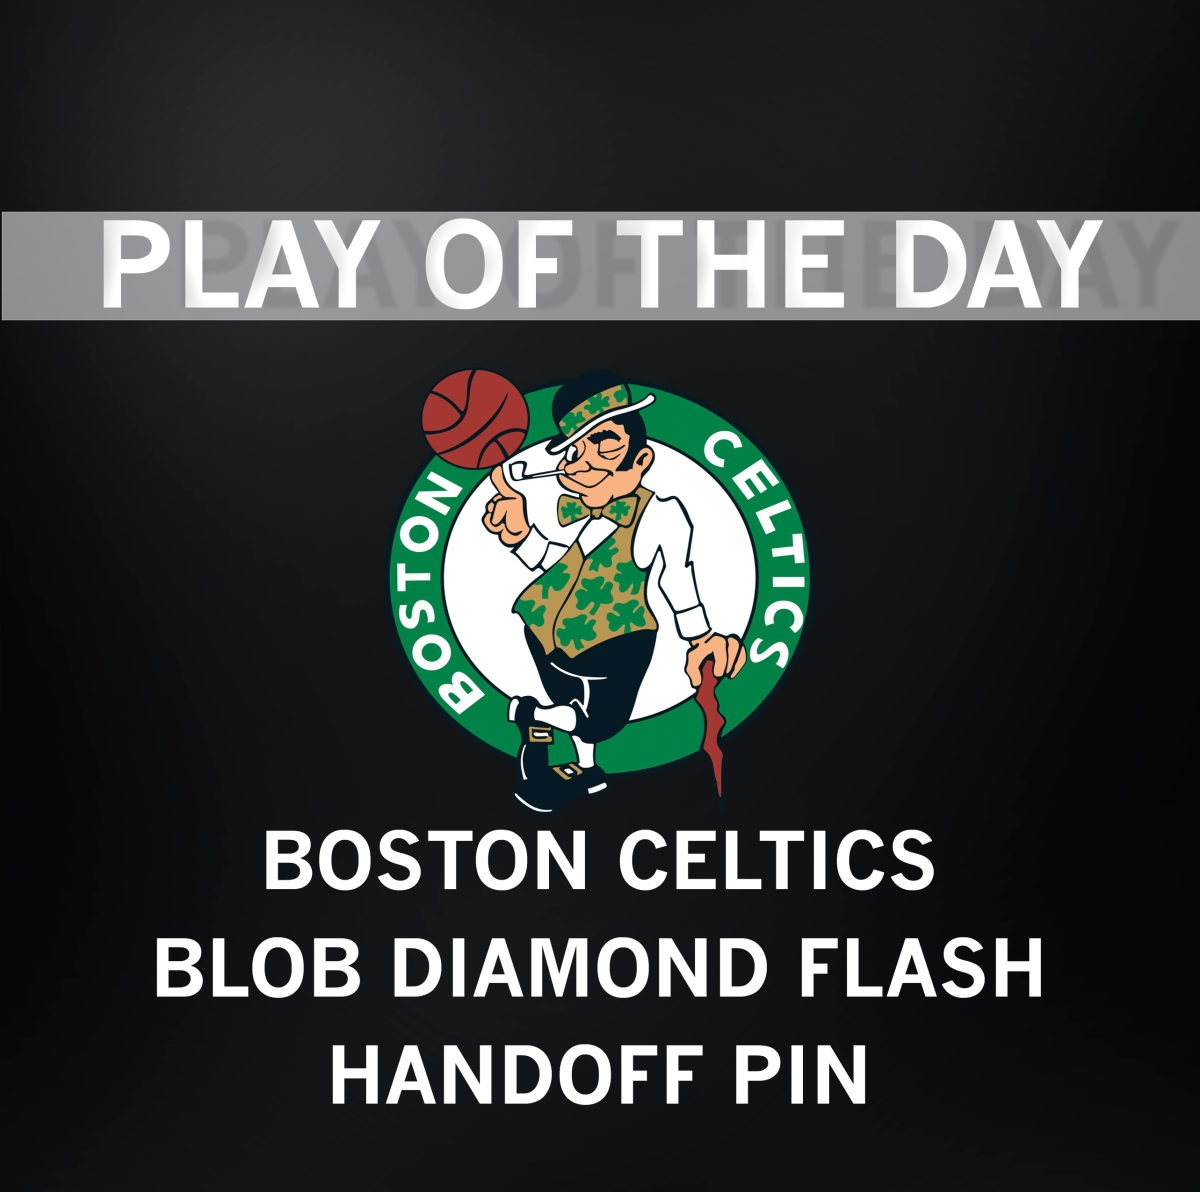 Boston Celtics | Man Offense - BLOB - Diamond - Flash - Handoff - Pin